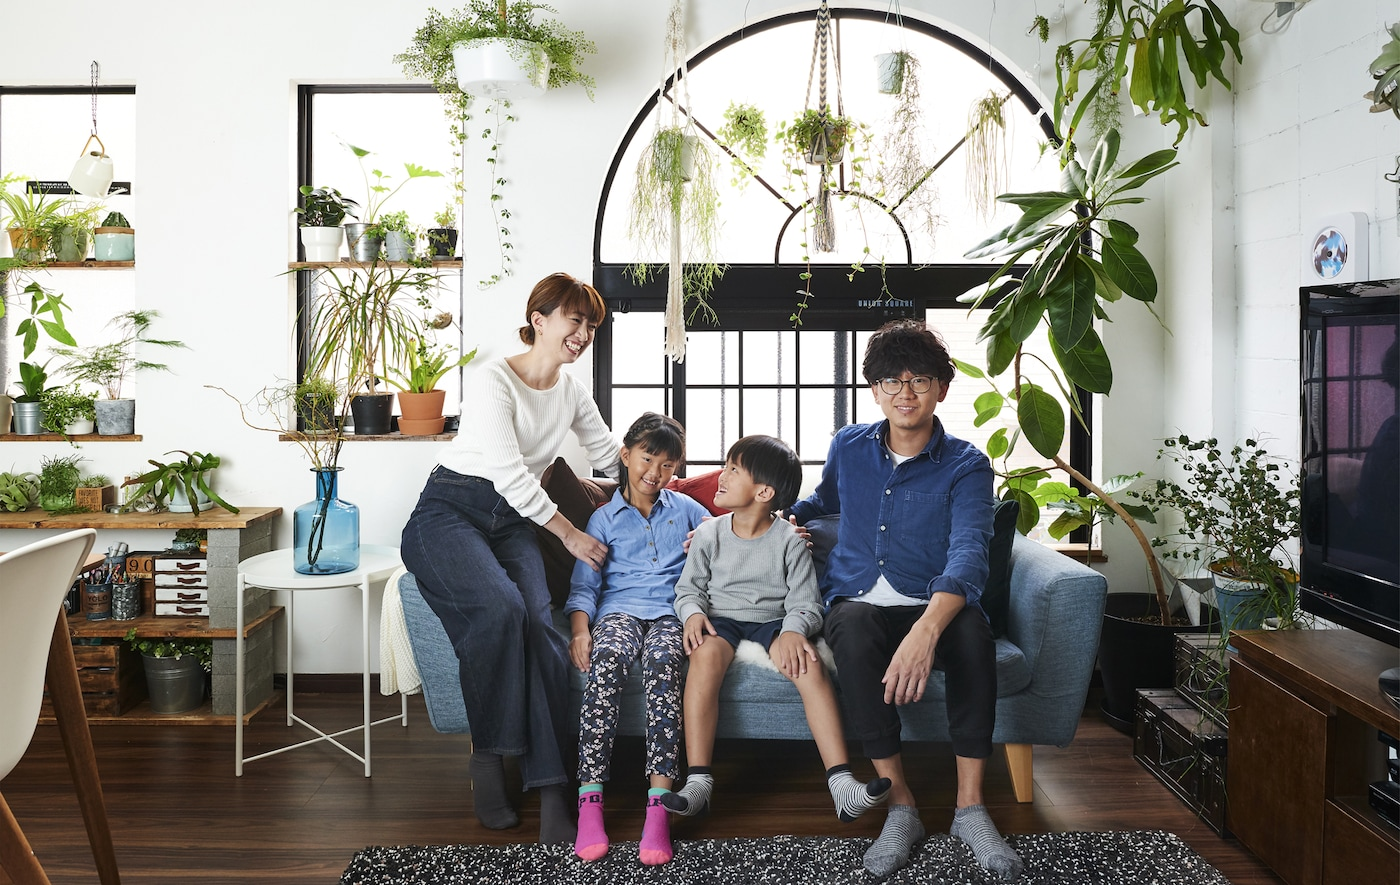 A portrait of Hiromi and Shunsuke and their children sitting on the sofa and plants displayed in the windows behind.